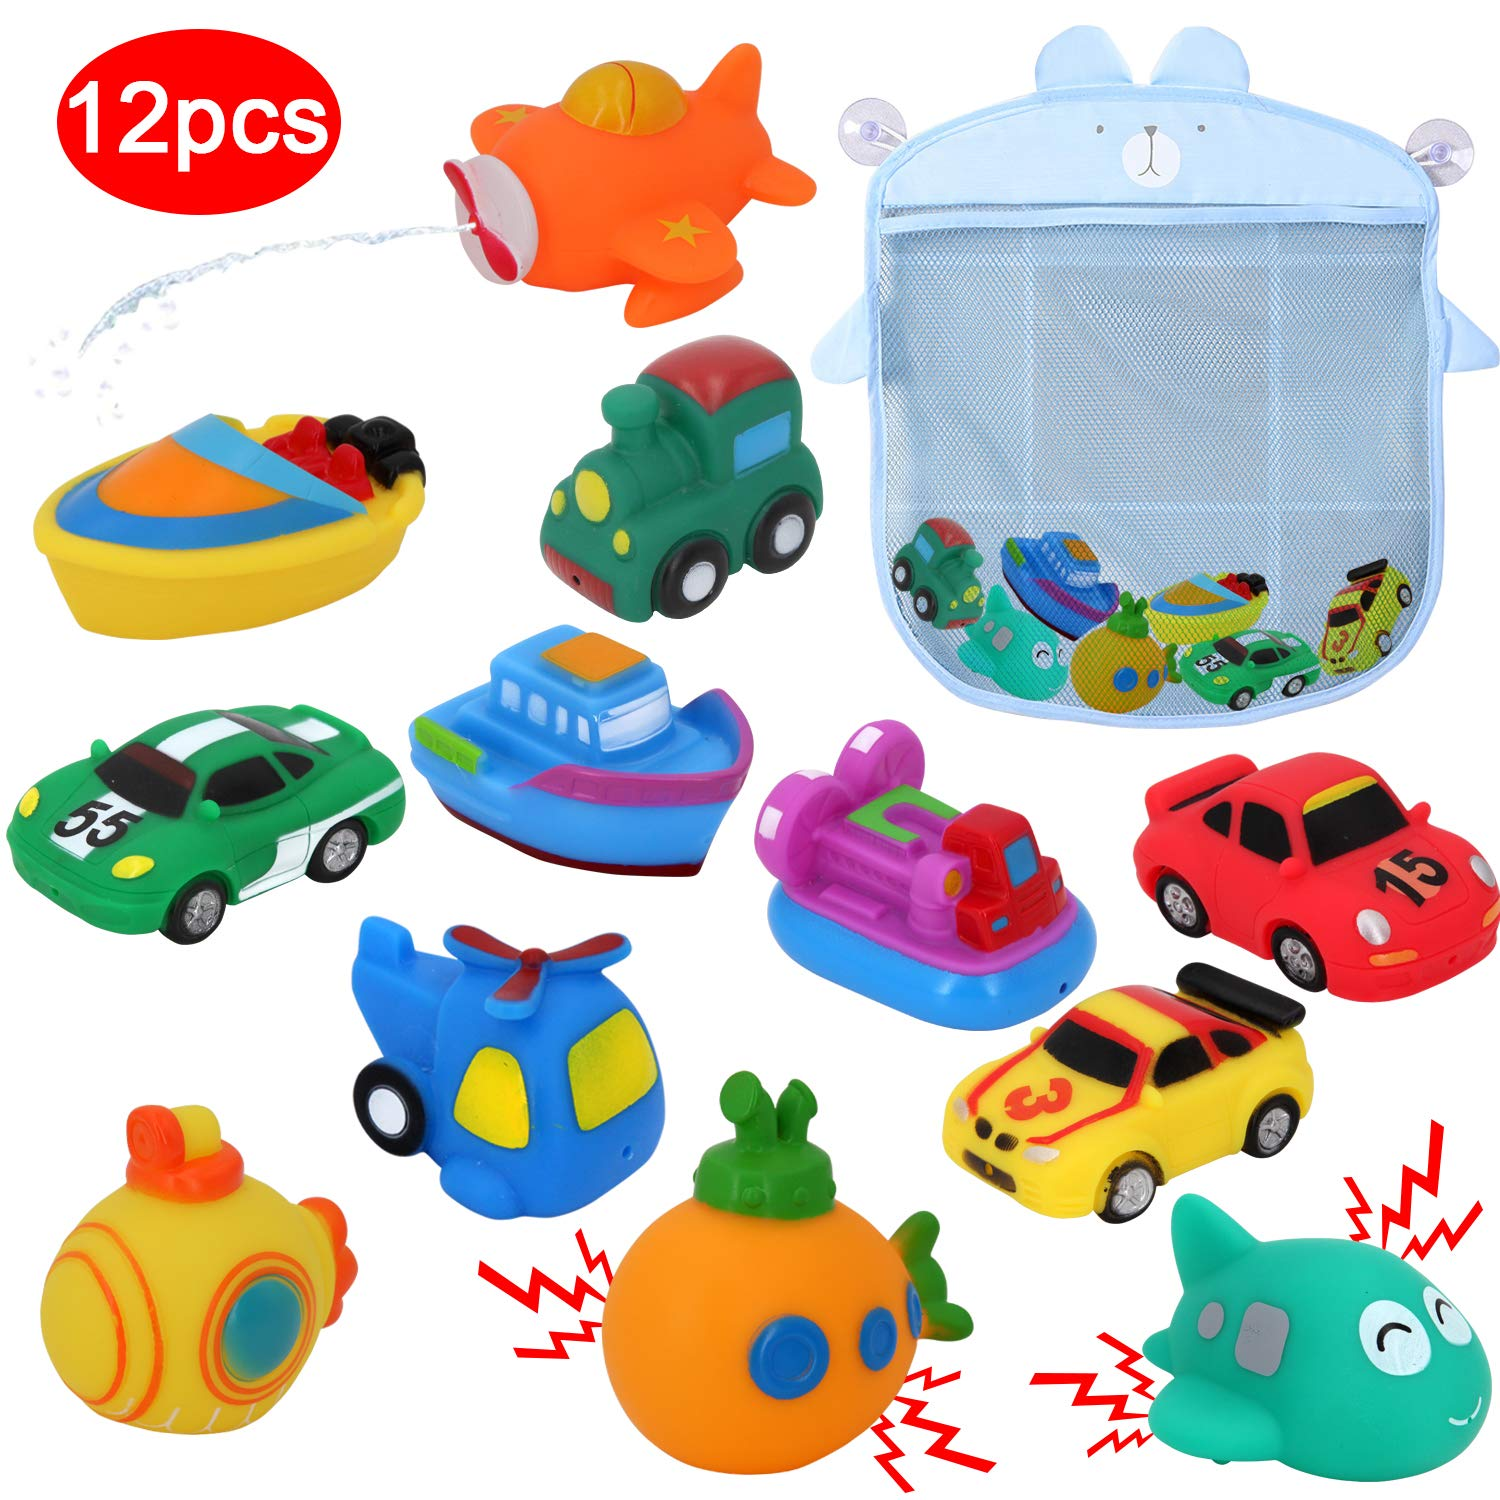 Transportation Train Boats Car Racing Squirting Toys Sealive Squirter Toys Floating Track for Tub Quick Dry Bathtub Toy Holder 12PCS Vehicle Bath Squirt Toys for Toddlers with Baby Toy Organizer